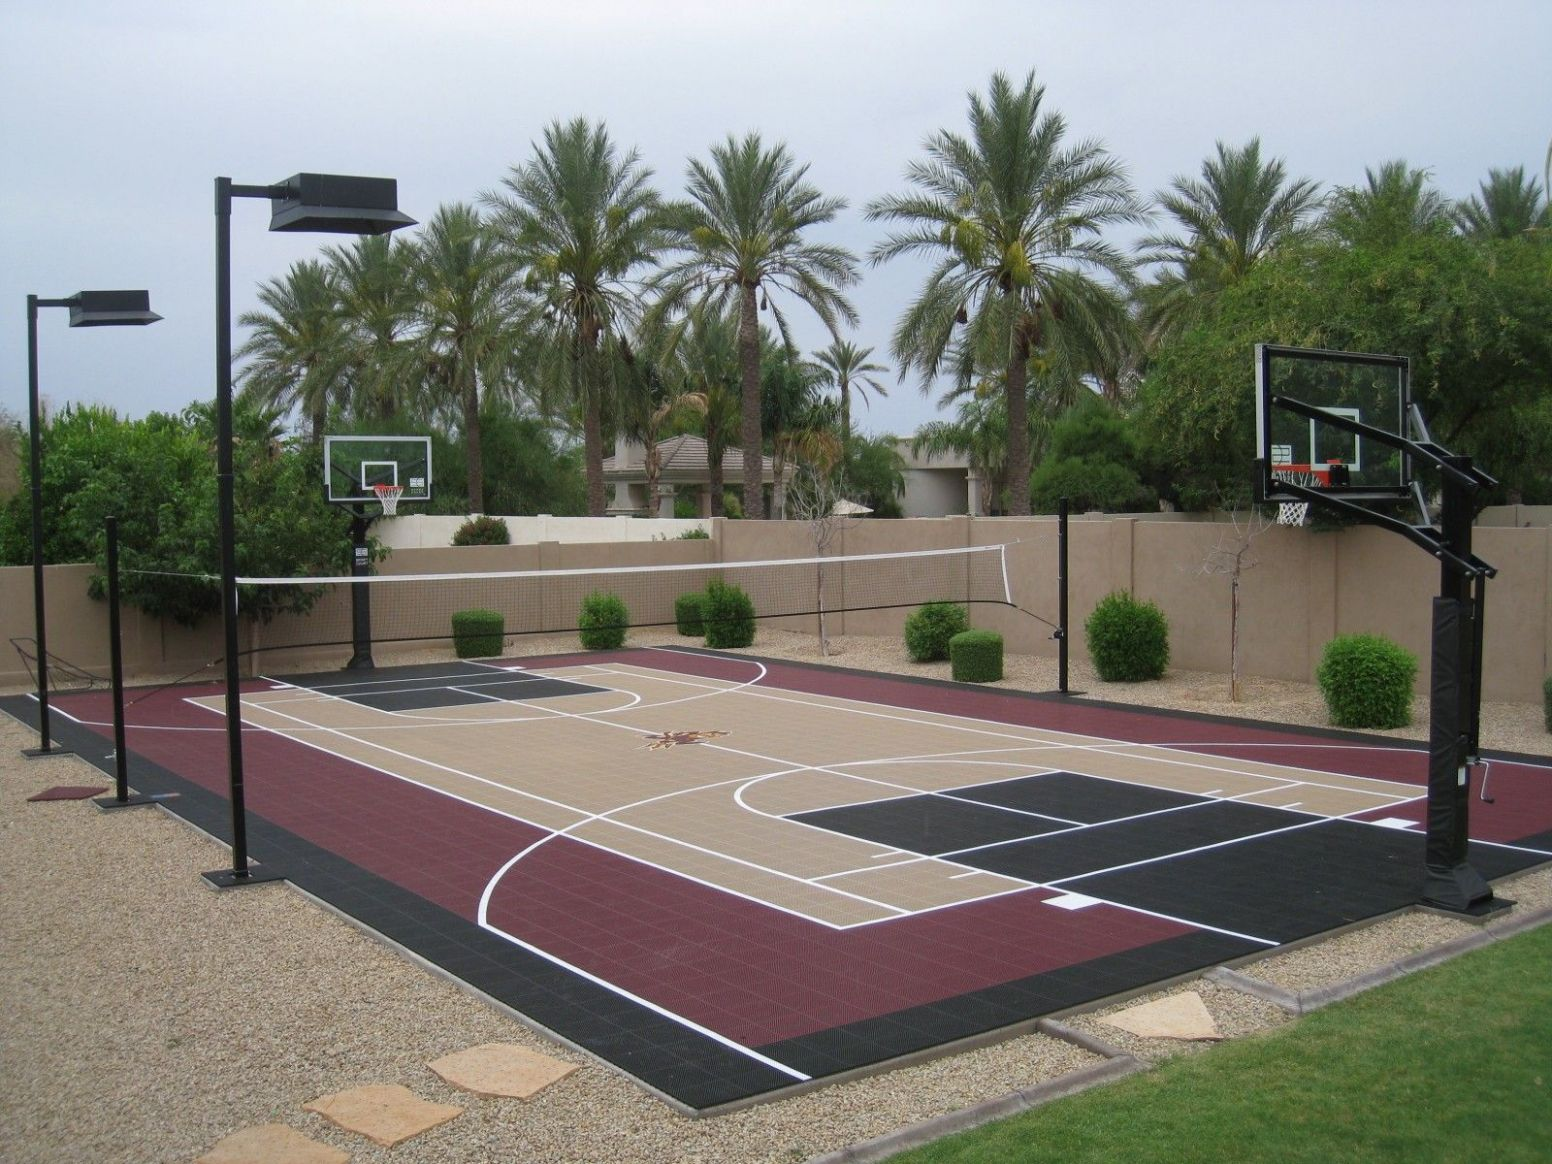 10' x 10' Full Court (With images) | Basketball court backyard ...